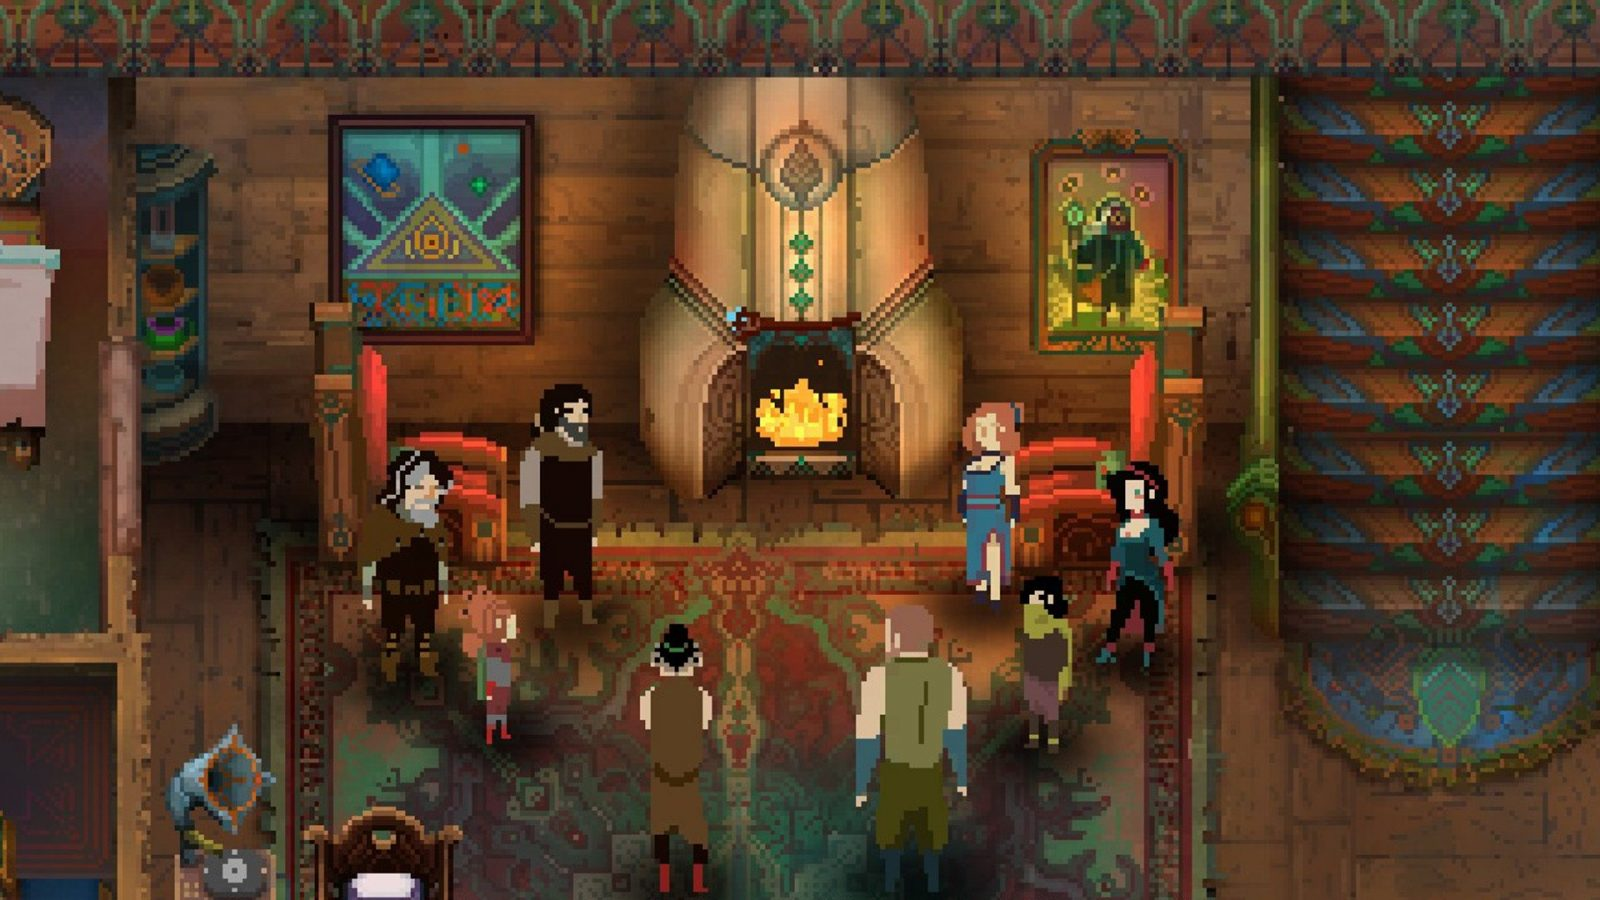 All About the 6 Playable Characters from Children of Morta